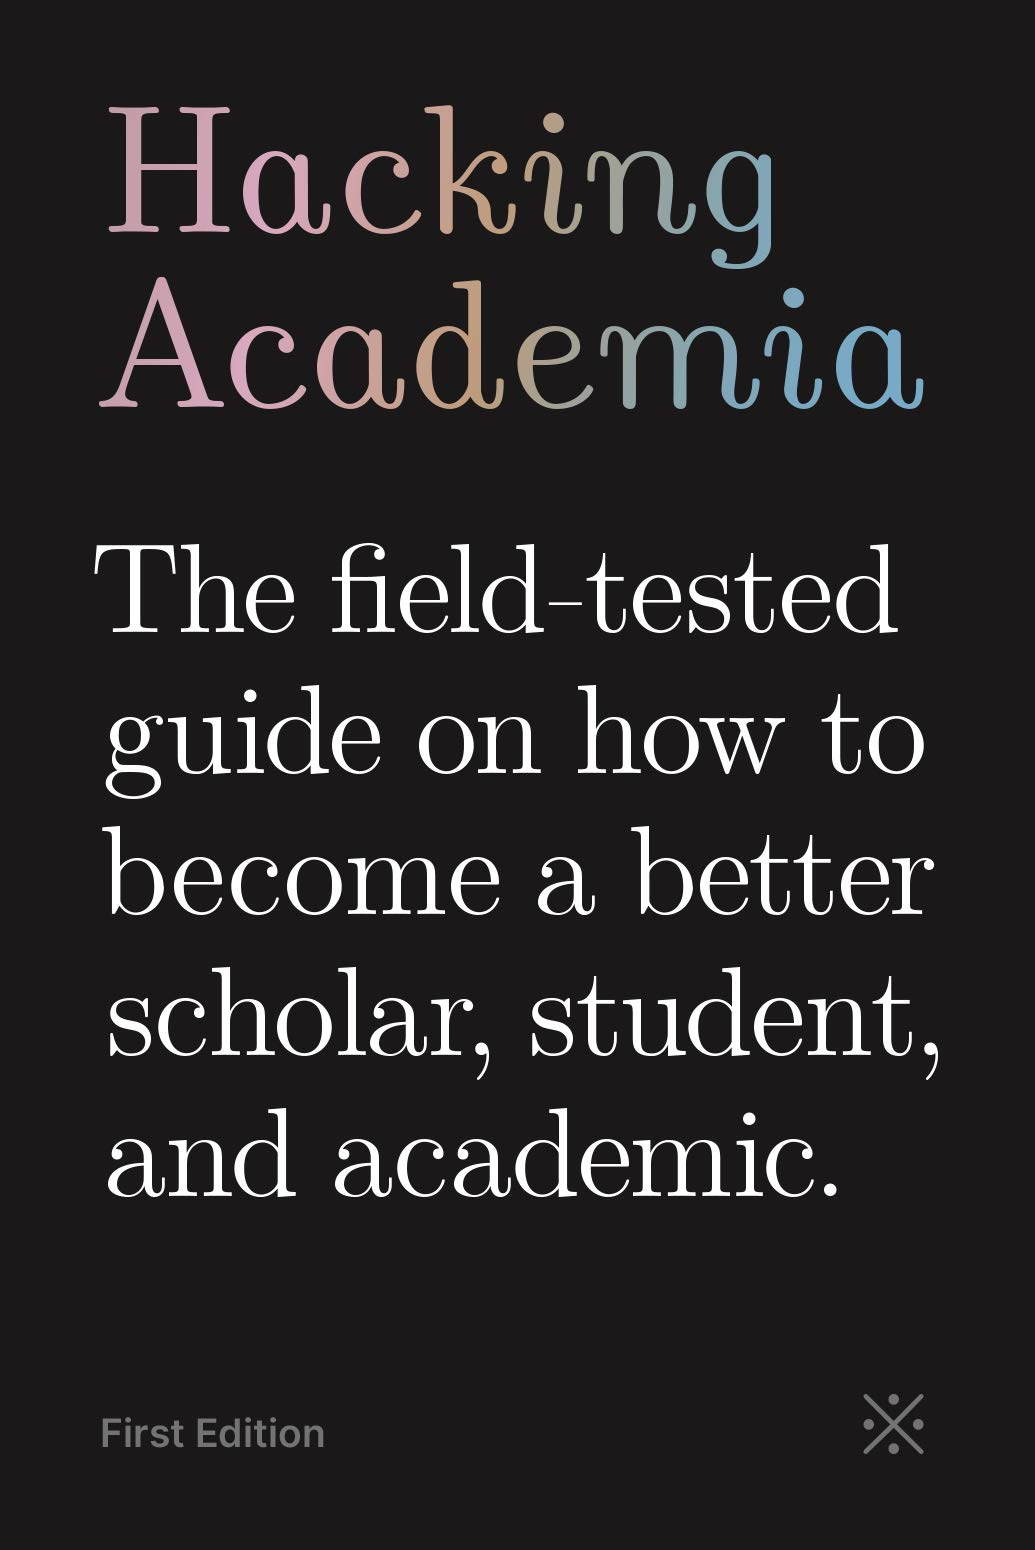 Hacking Academia: The field-tested guide on how to become a better scholar, student, and academic